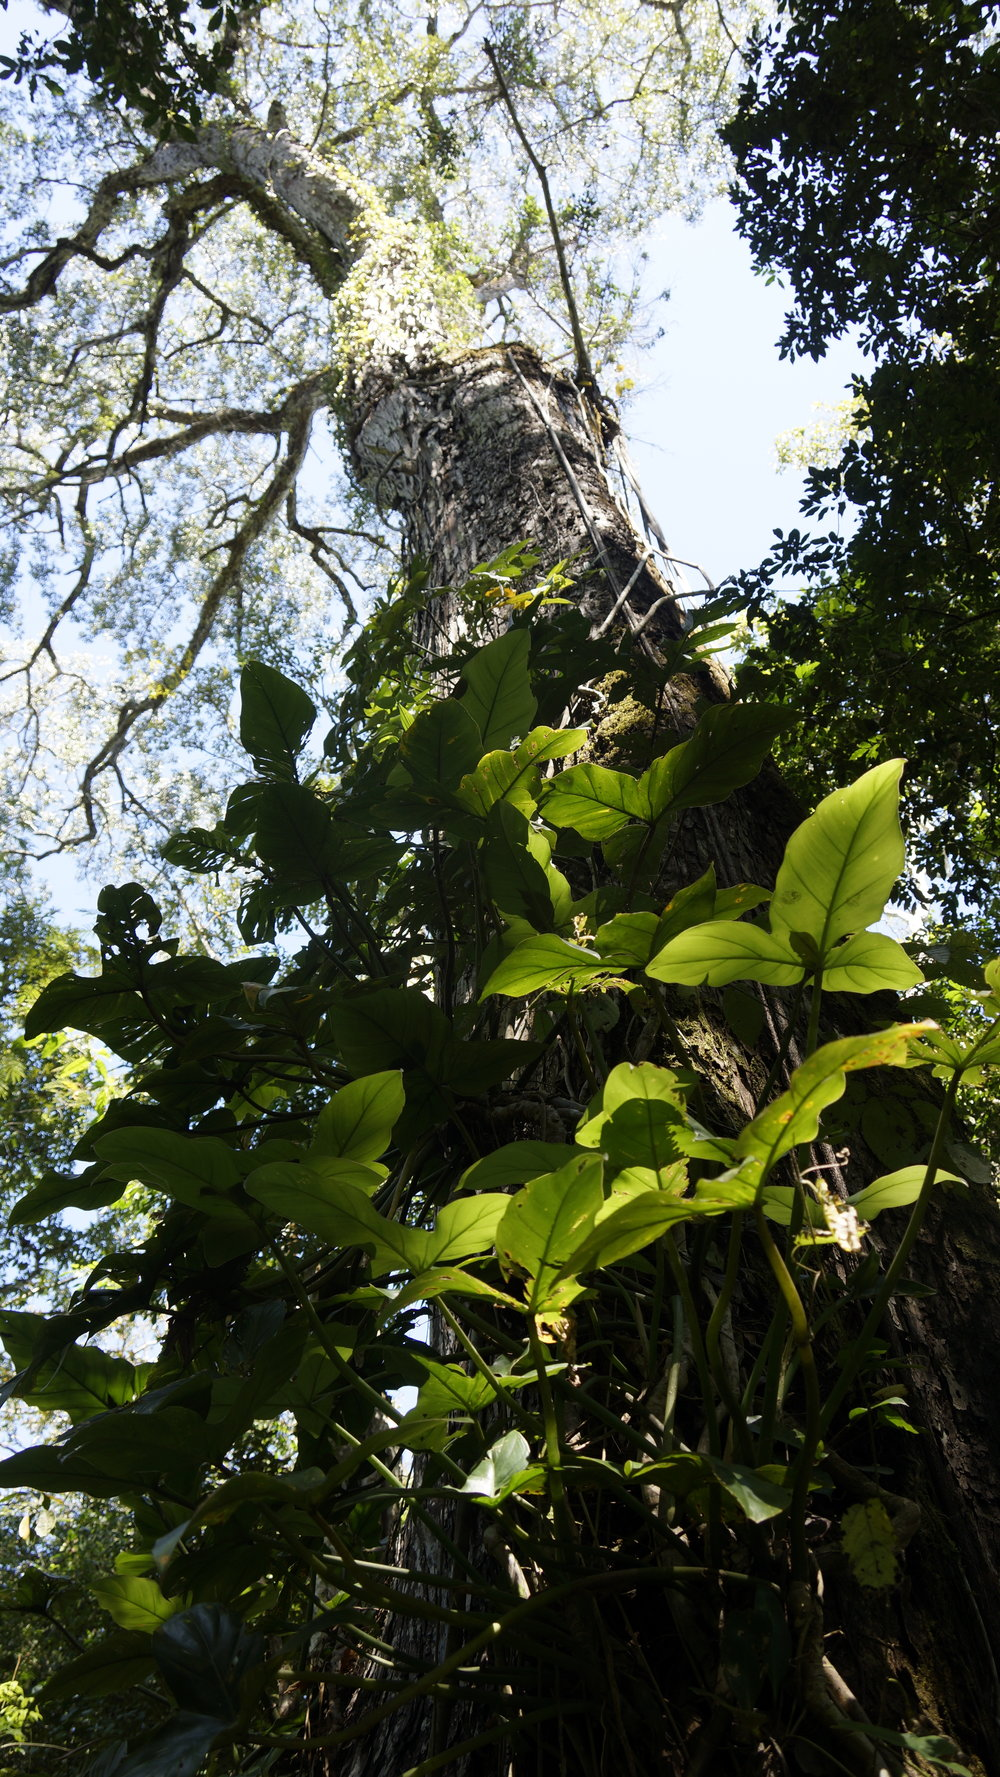 This is an unknown Philodendron species climbing up an old growth Mahogany tree in the Kayapo indigenous territory around the village of Aukre in the state of Para, Brazil. Photo credit  @mickmitty